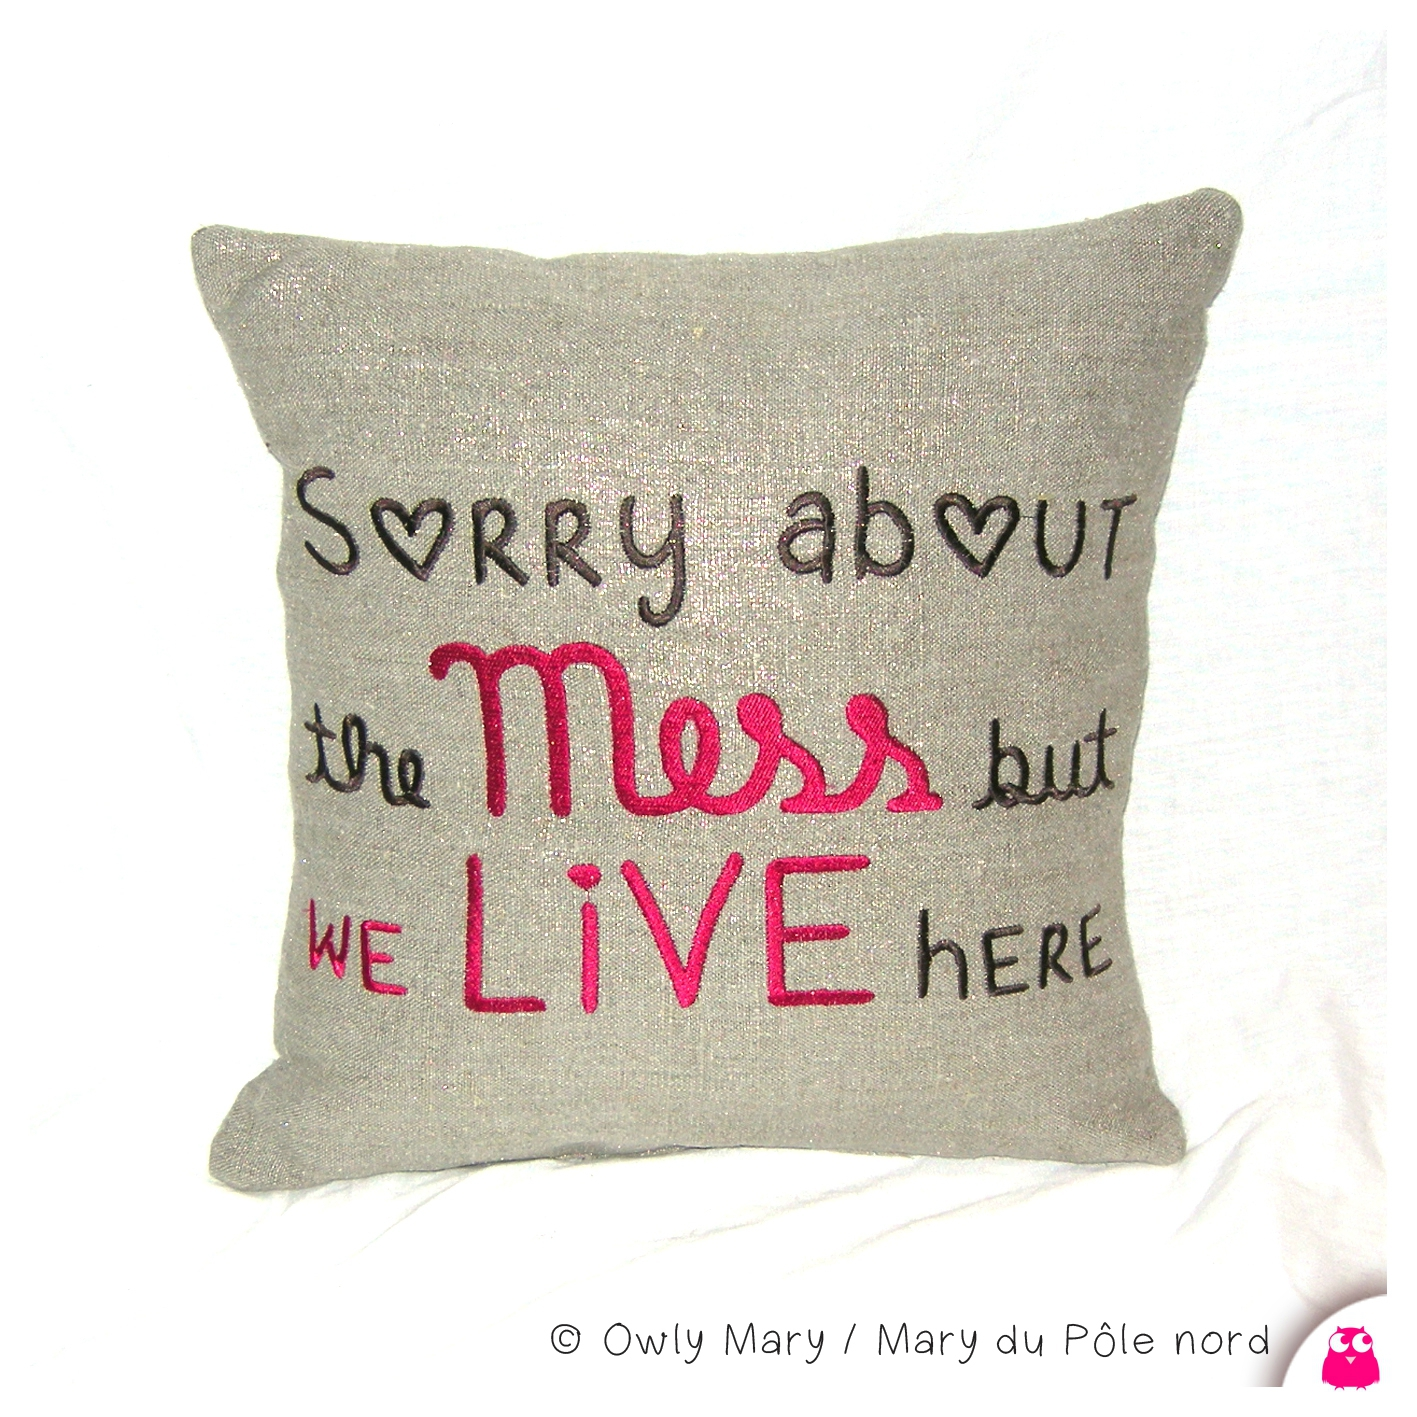 coussin-vierge-saint-valentin-owly-mary-du-pole-nord-sorry-about-the-mess-but-we-live-here-lin-lame-dore-brillant-broderie-brode-35x35-decoration-deco